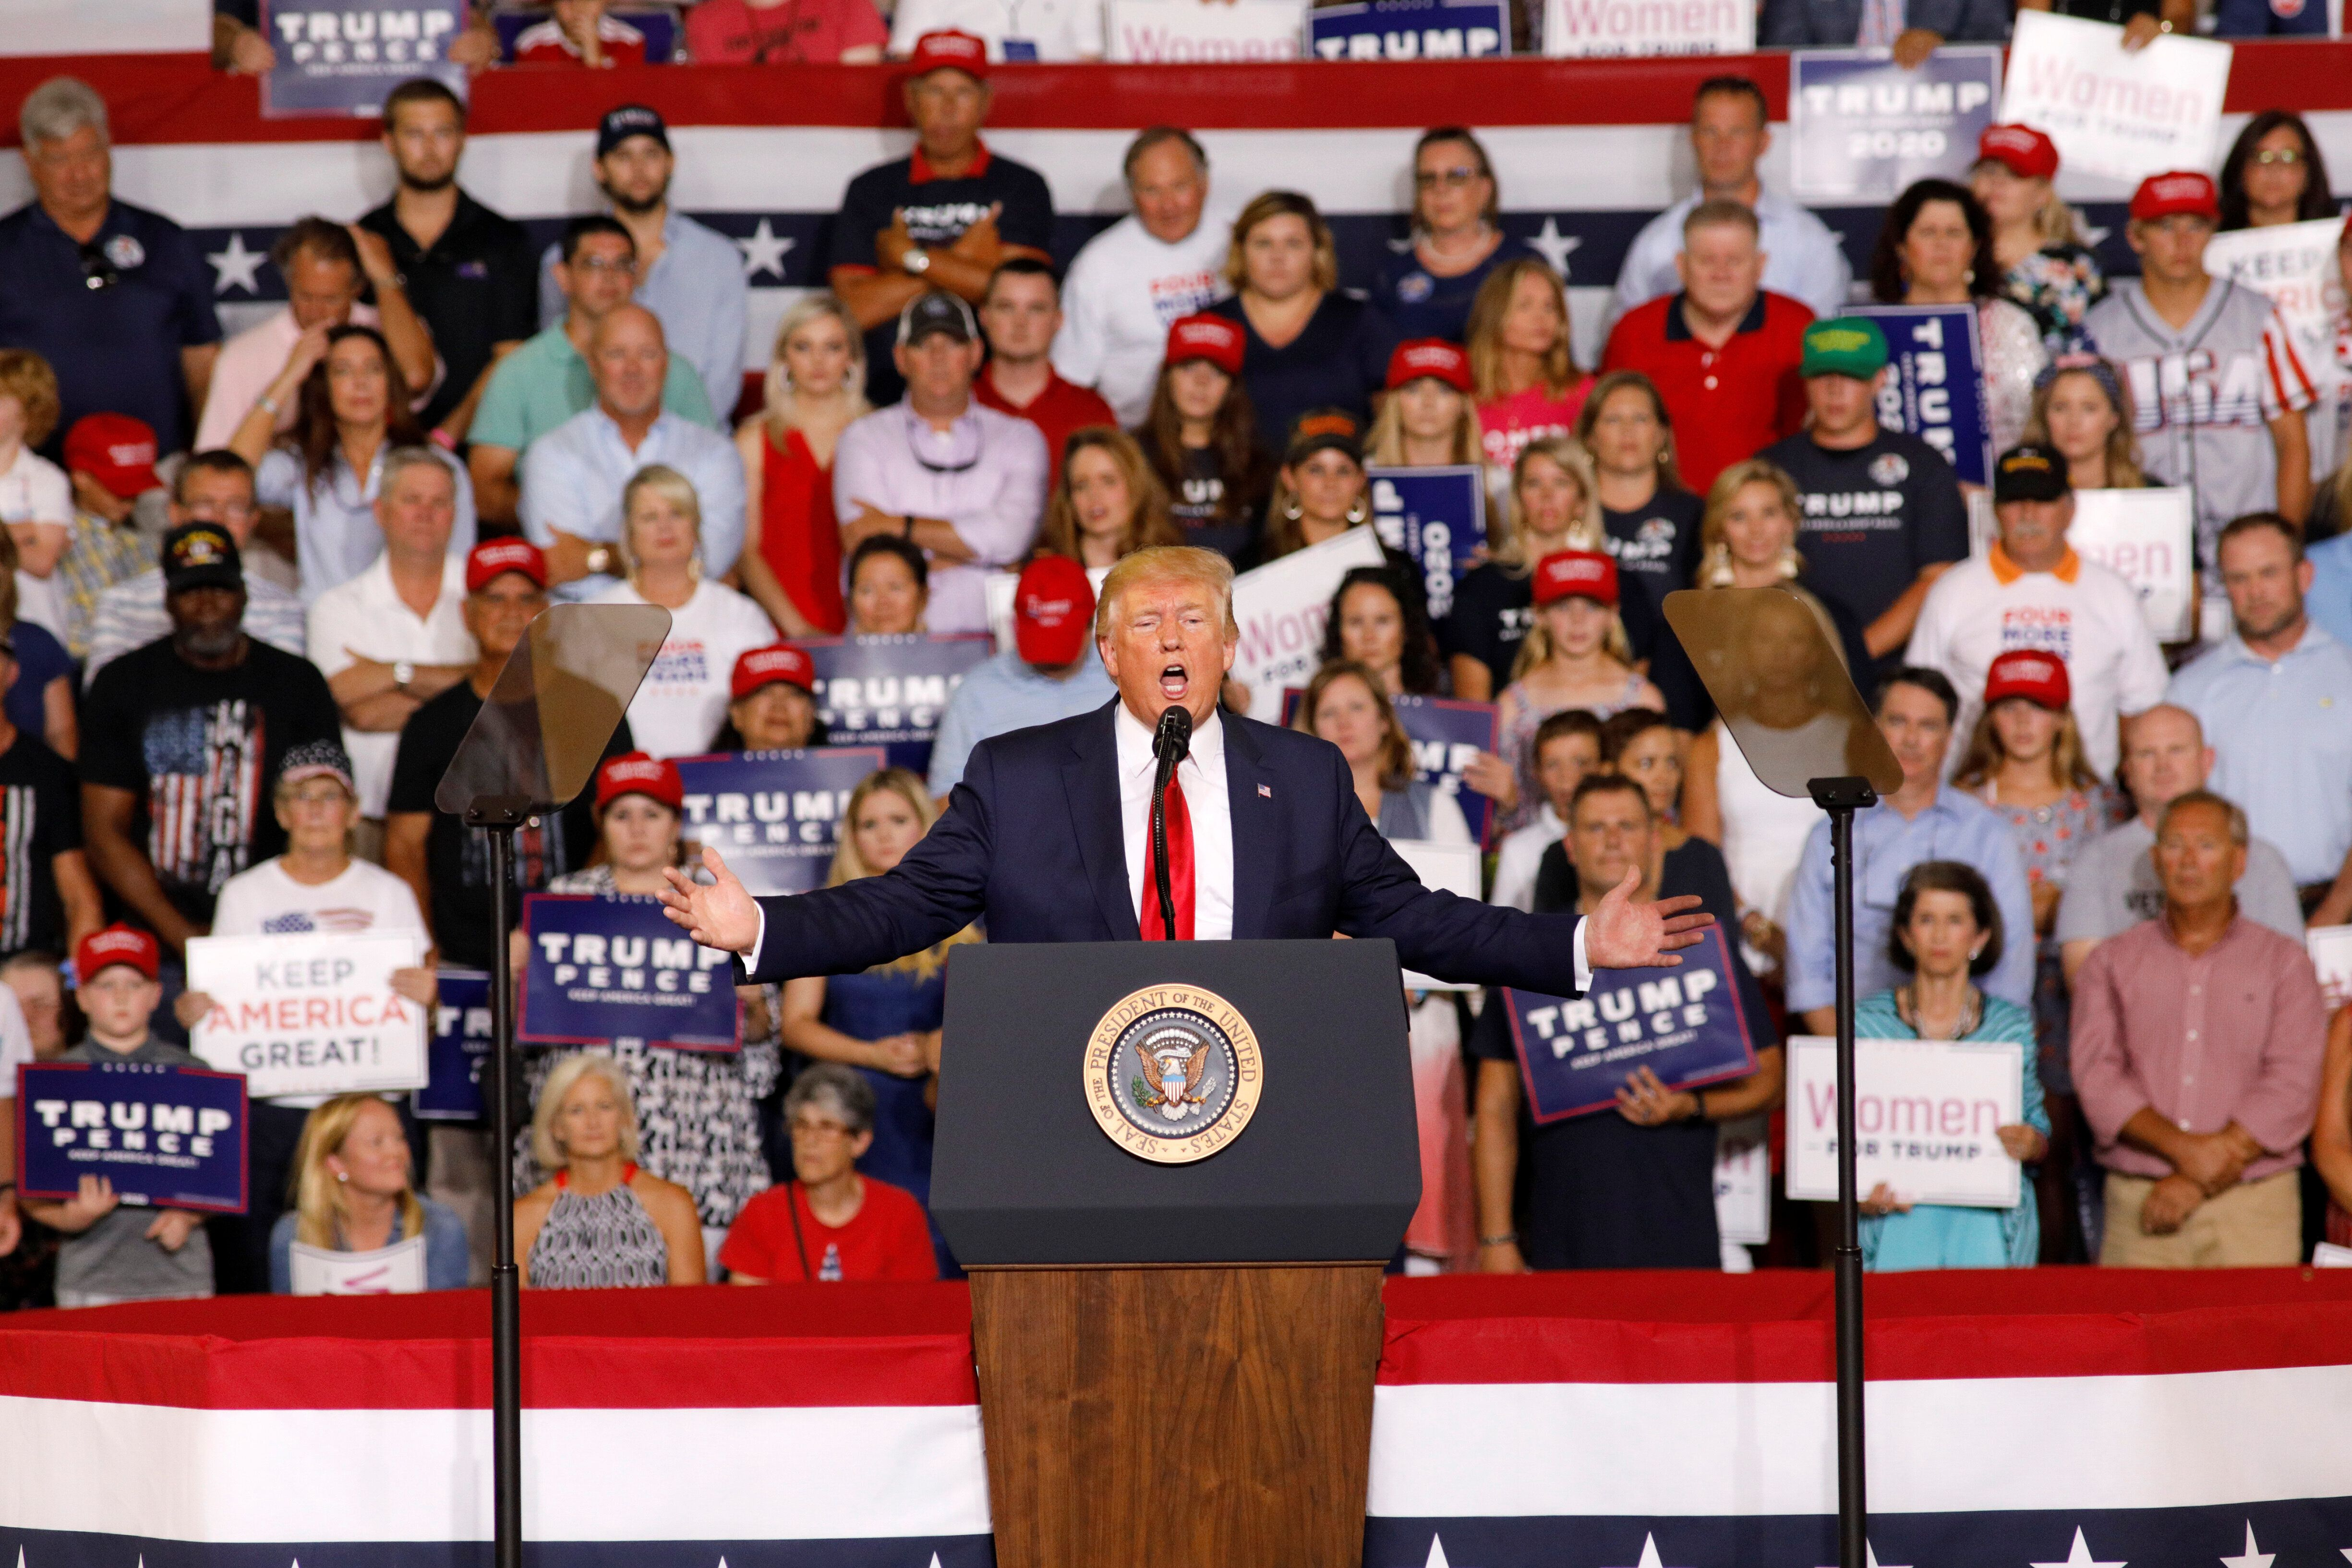 """Trump speaks about U.S. Rep. Ilhan Omar, and the crowd responds with """"send her back"""" at a """"Keep America Great"""" campaign rally"""